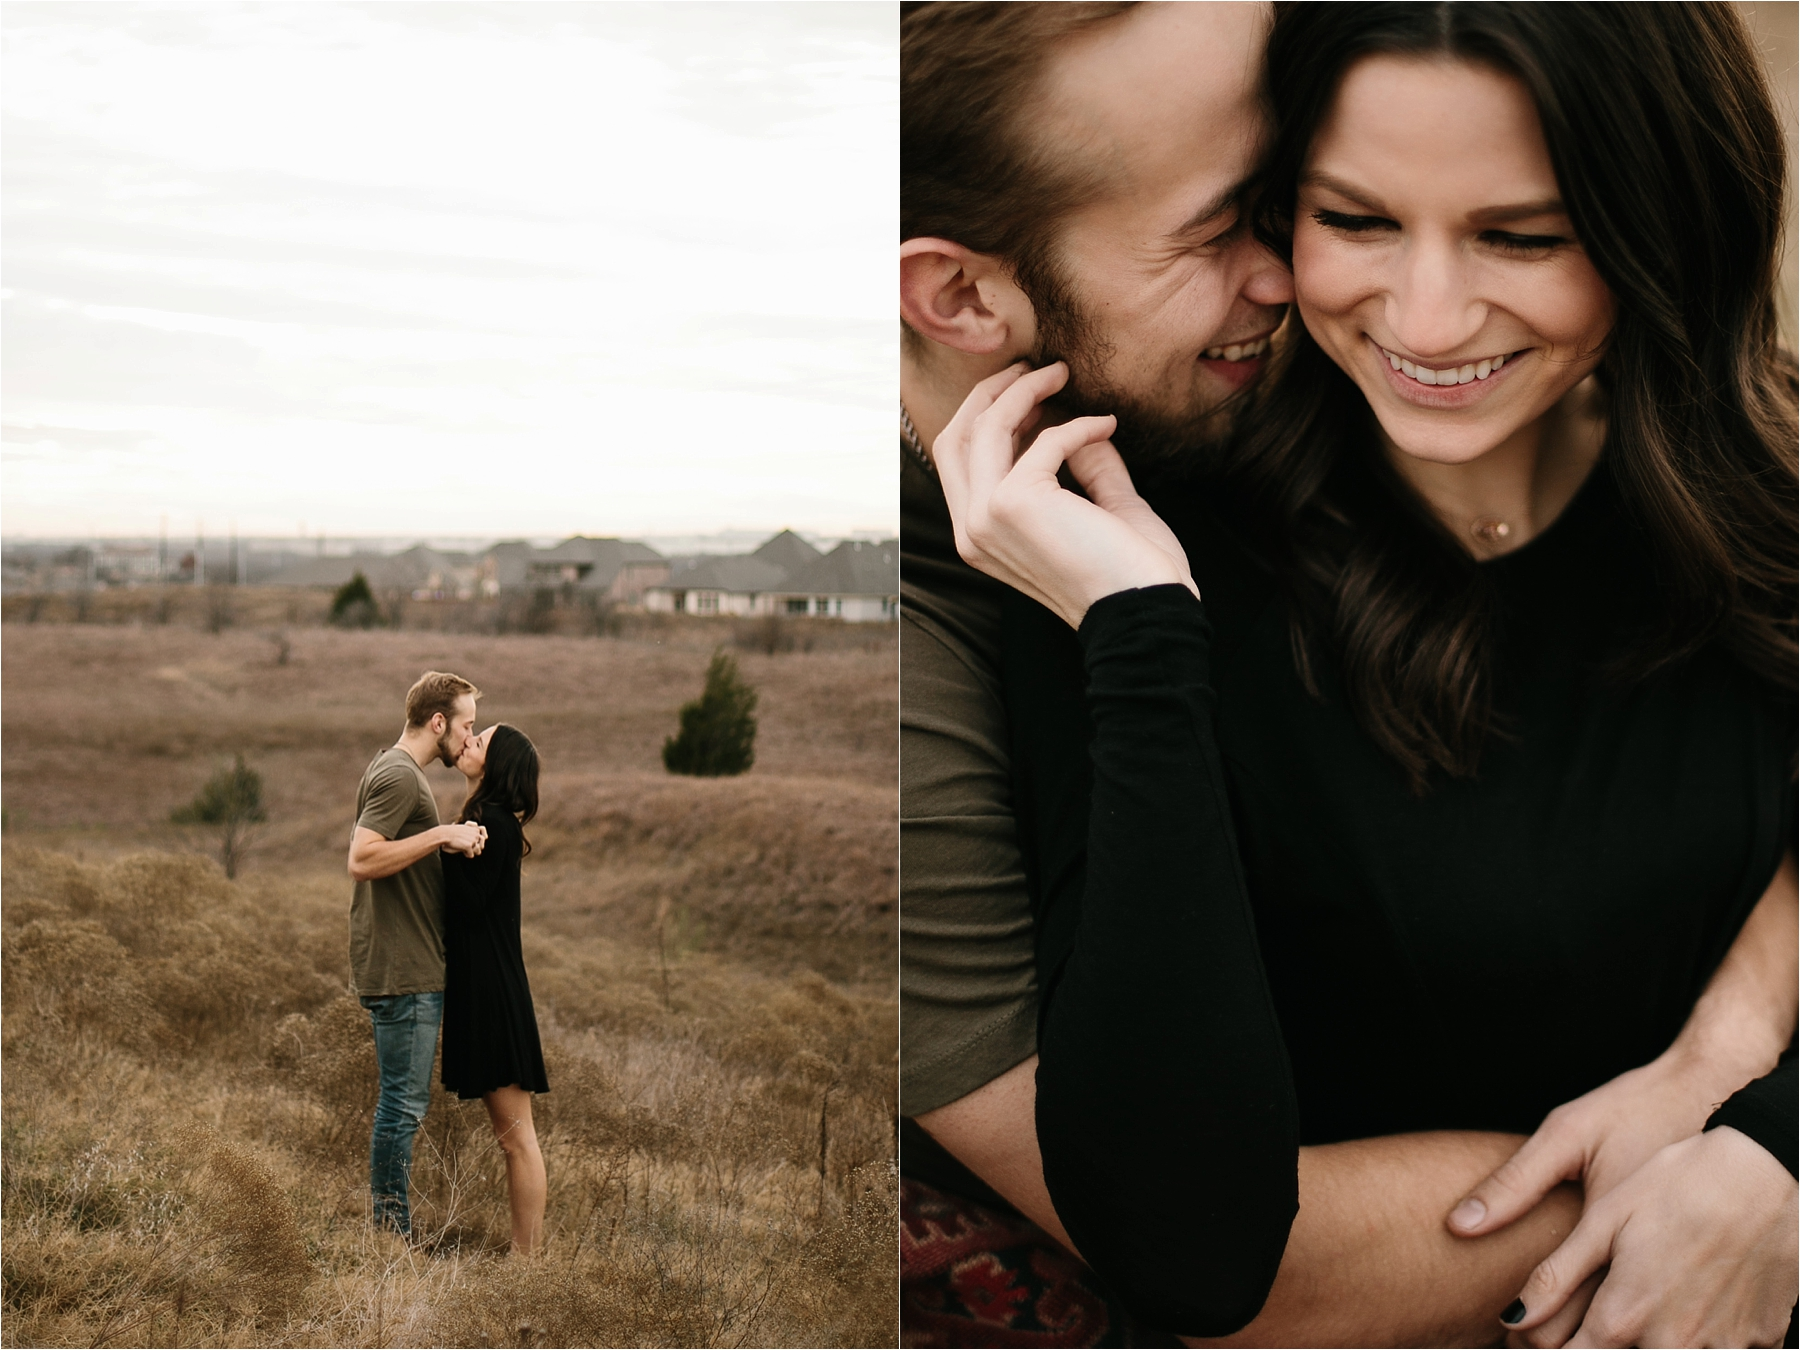 Trey + Phoebe __ a playful, intimate engagement session with dark_neutral outfit inspiration by North Texas Wedding Photographer Rachel Meagan Photography __ 05